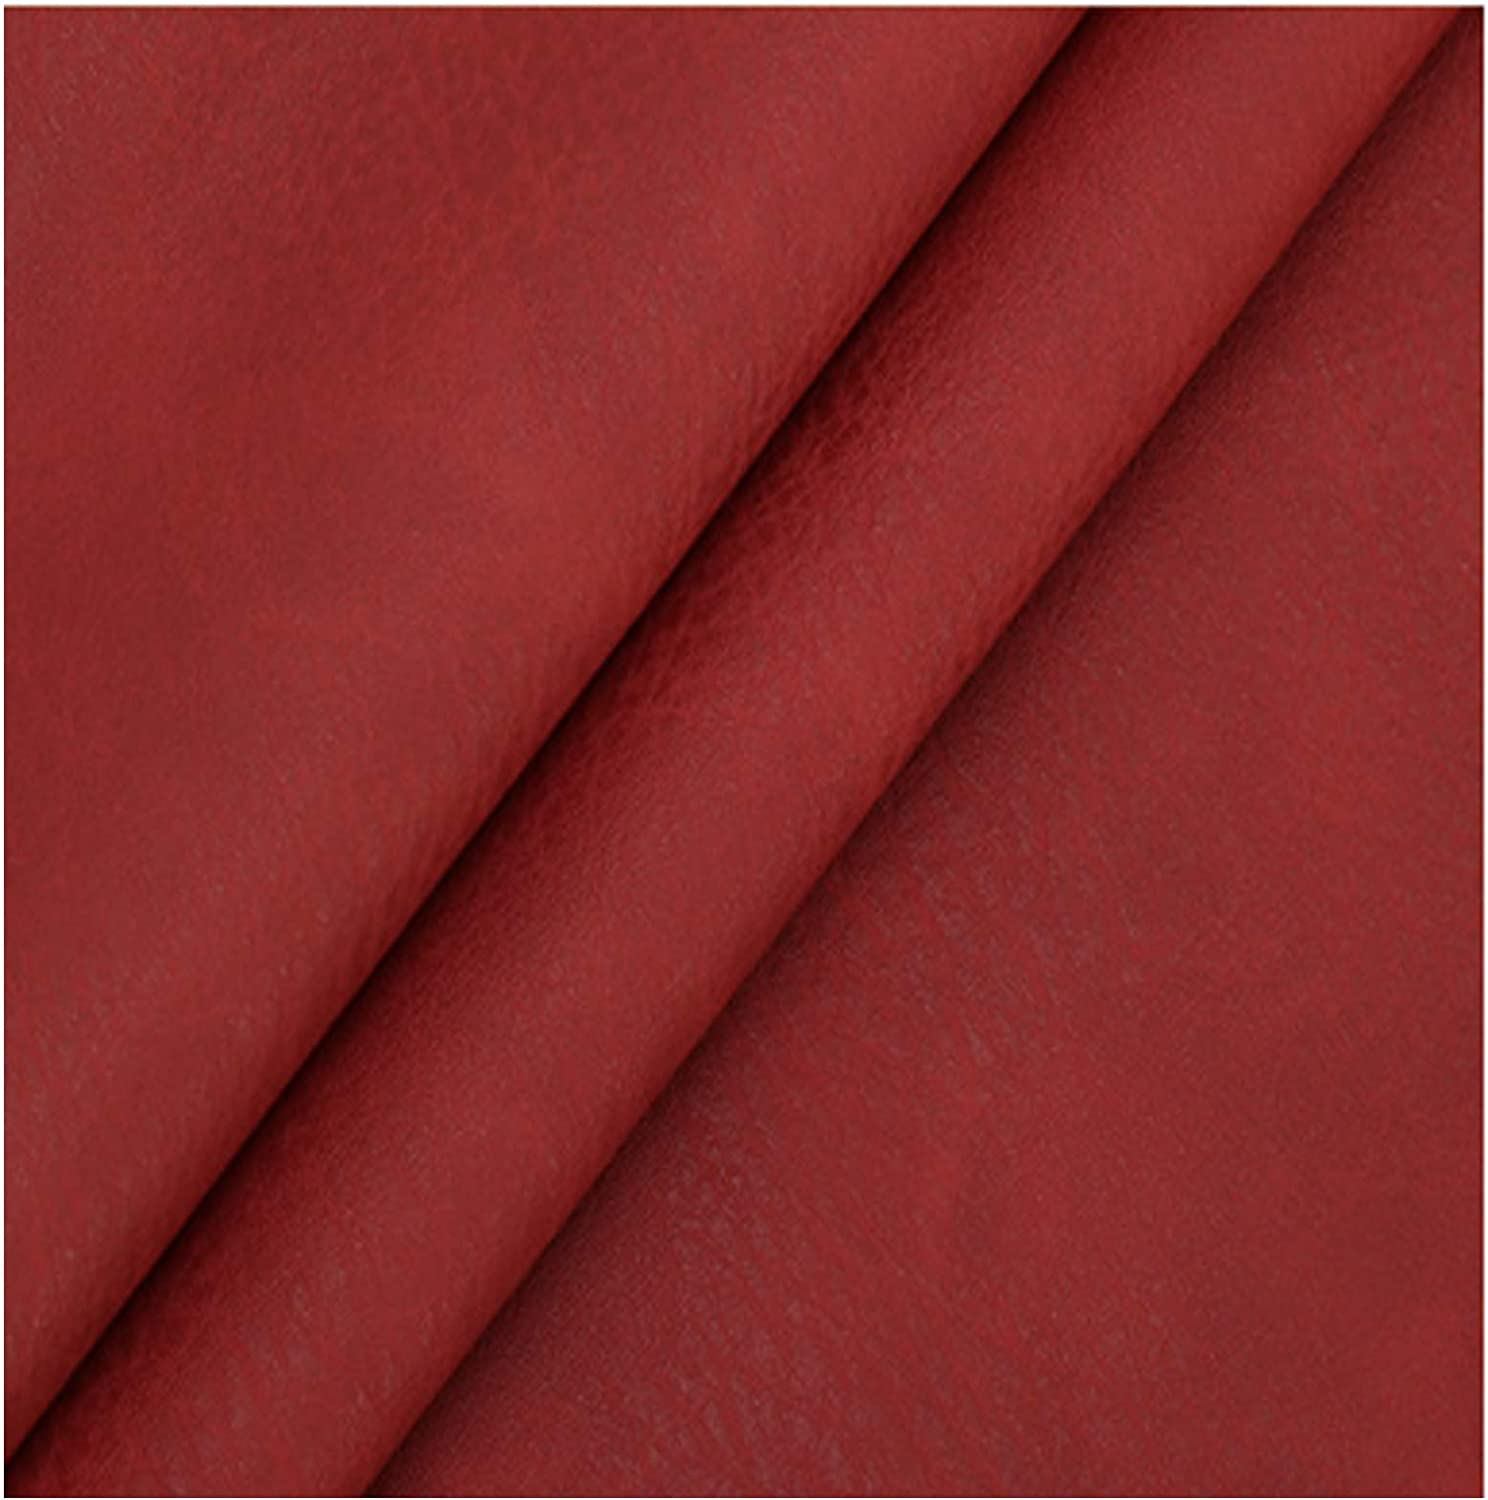 Red Max 69% OFF 138mm Wide Leatherette 1.2mm Max 65% OFF Waterproof Vinyl F Fabric Thick